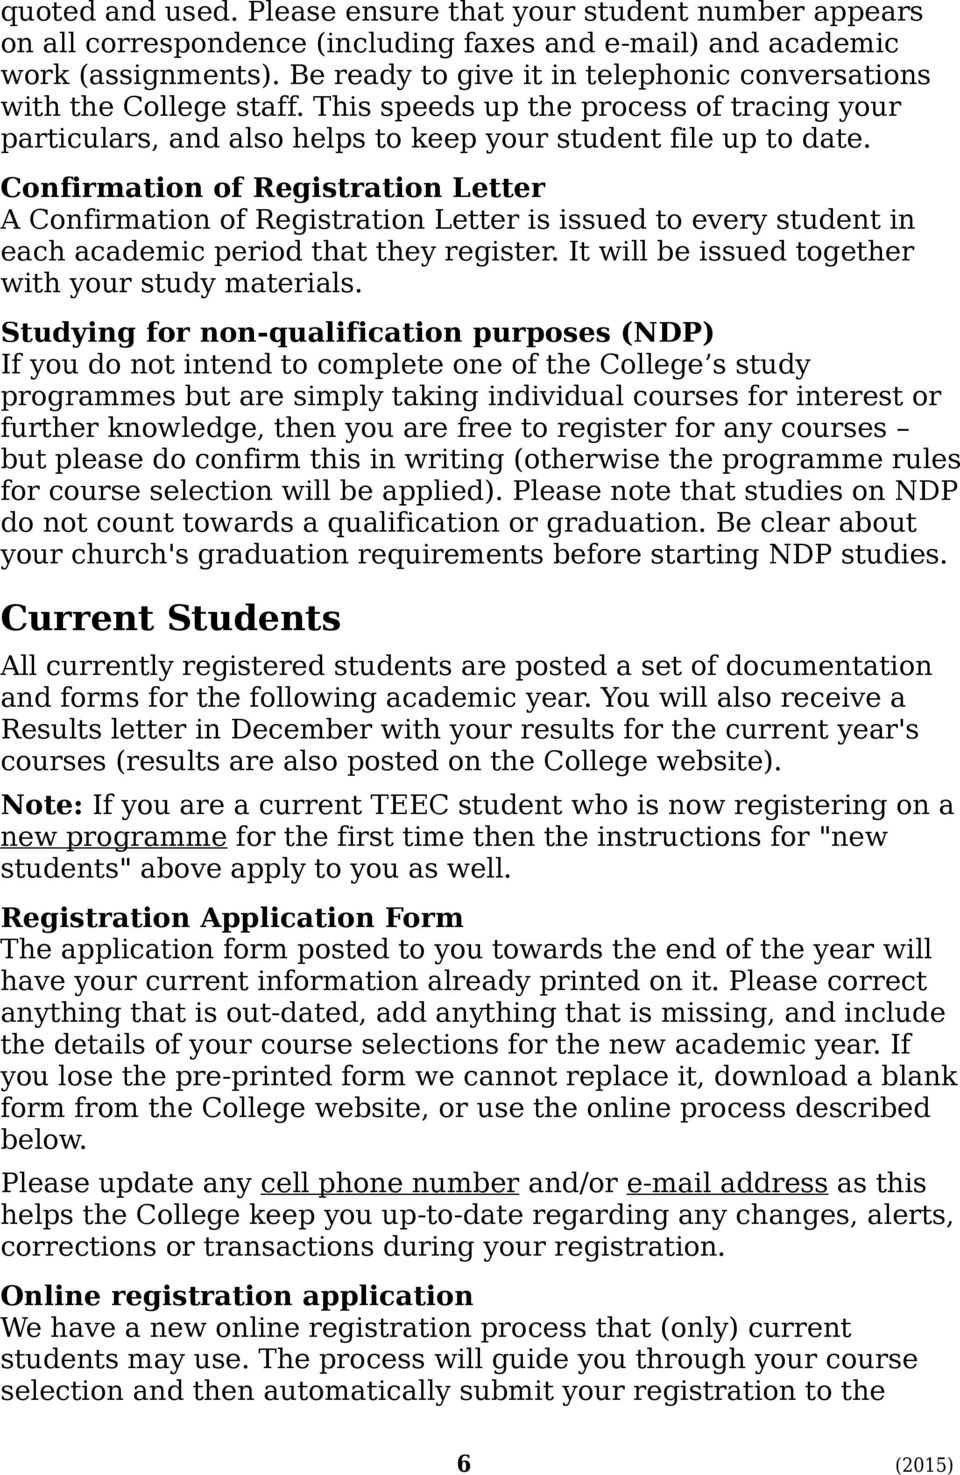 Confirmation of Registration Letter A Confirmation of Registration Letter is issued to every student in each academic period that they register. It will be issued together with your study materials.